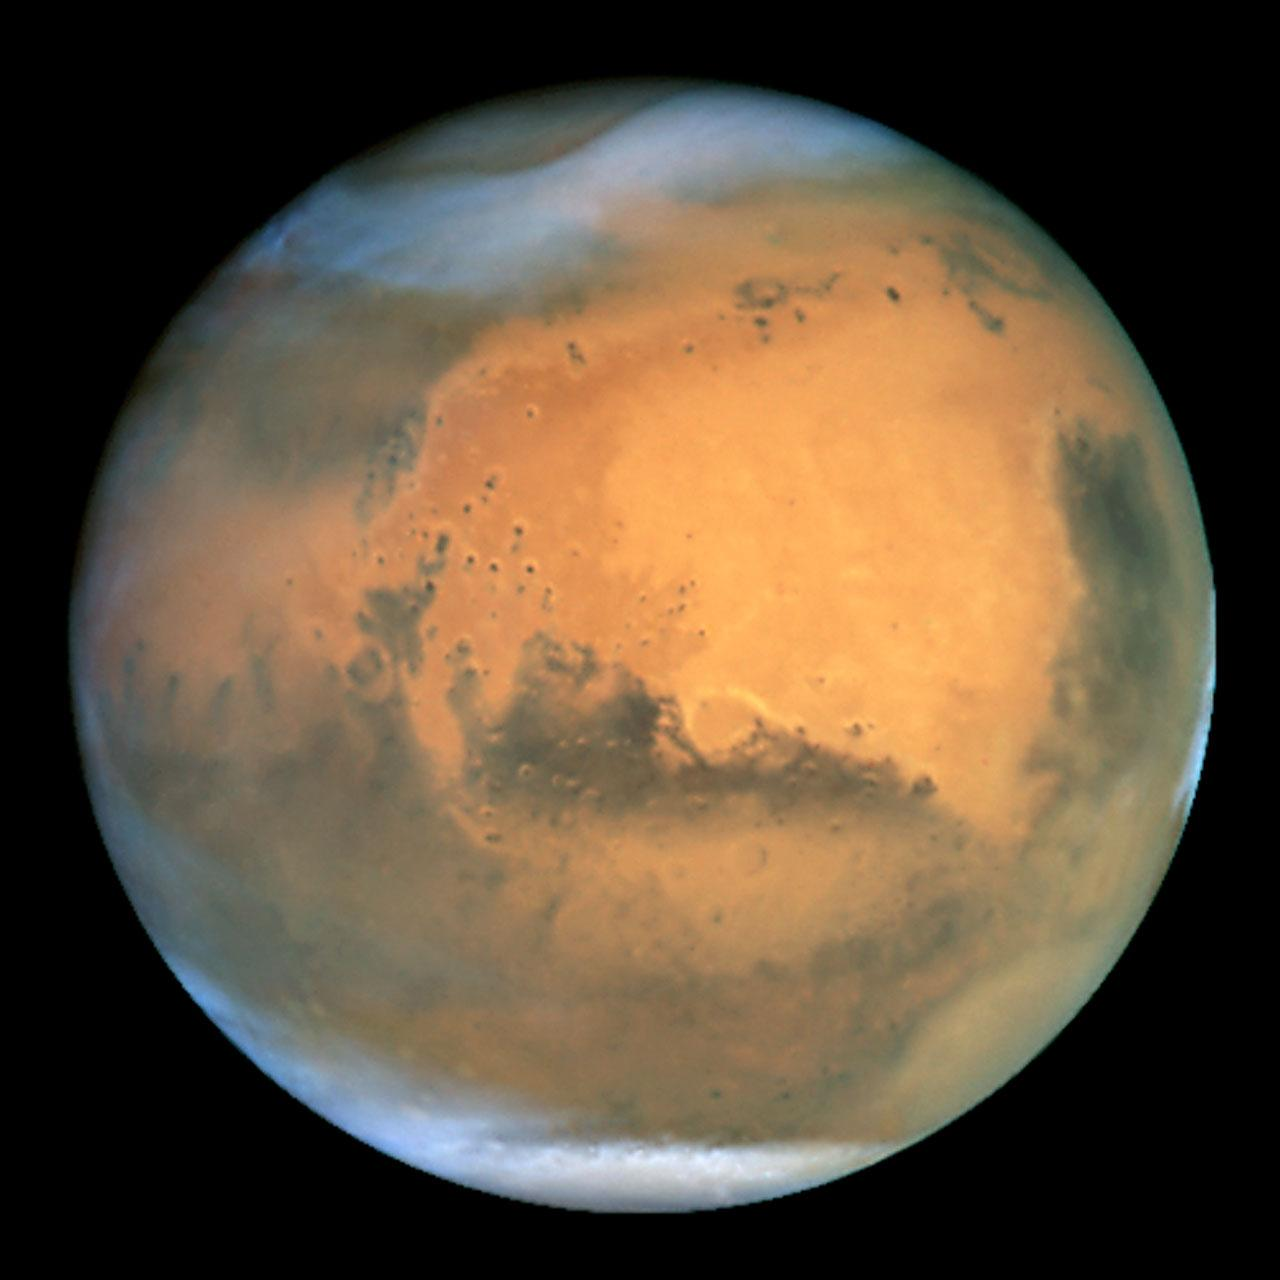 Frosty white water ice clouds and swirling orange dust storms above a vivid rusty landscape reveal Mars as a dynamic planet in this sharpest view ever obtained by an Earth-based telescope. Scientisits have found water on the dusty planet, suggesting possible life. Acknowledgements: J. Bell (Cornell U.), P. James (U. Toledo), M. Wolff (Space Science Institute), A. Lubenow (STScI), J. Neubert (MIT/Cornell)